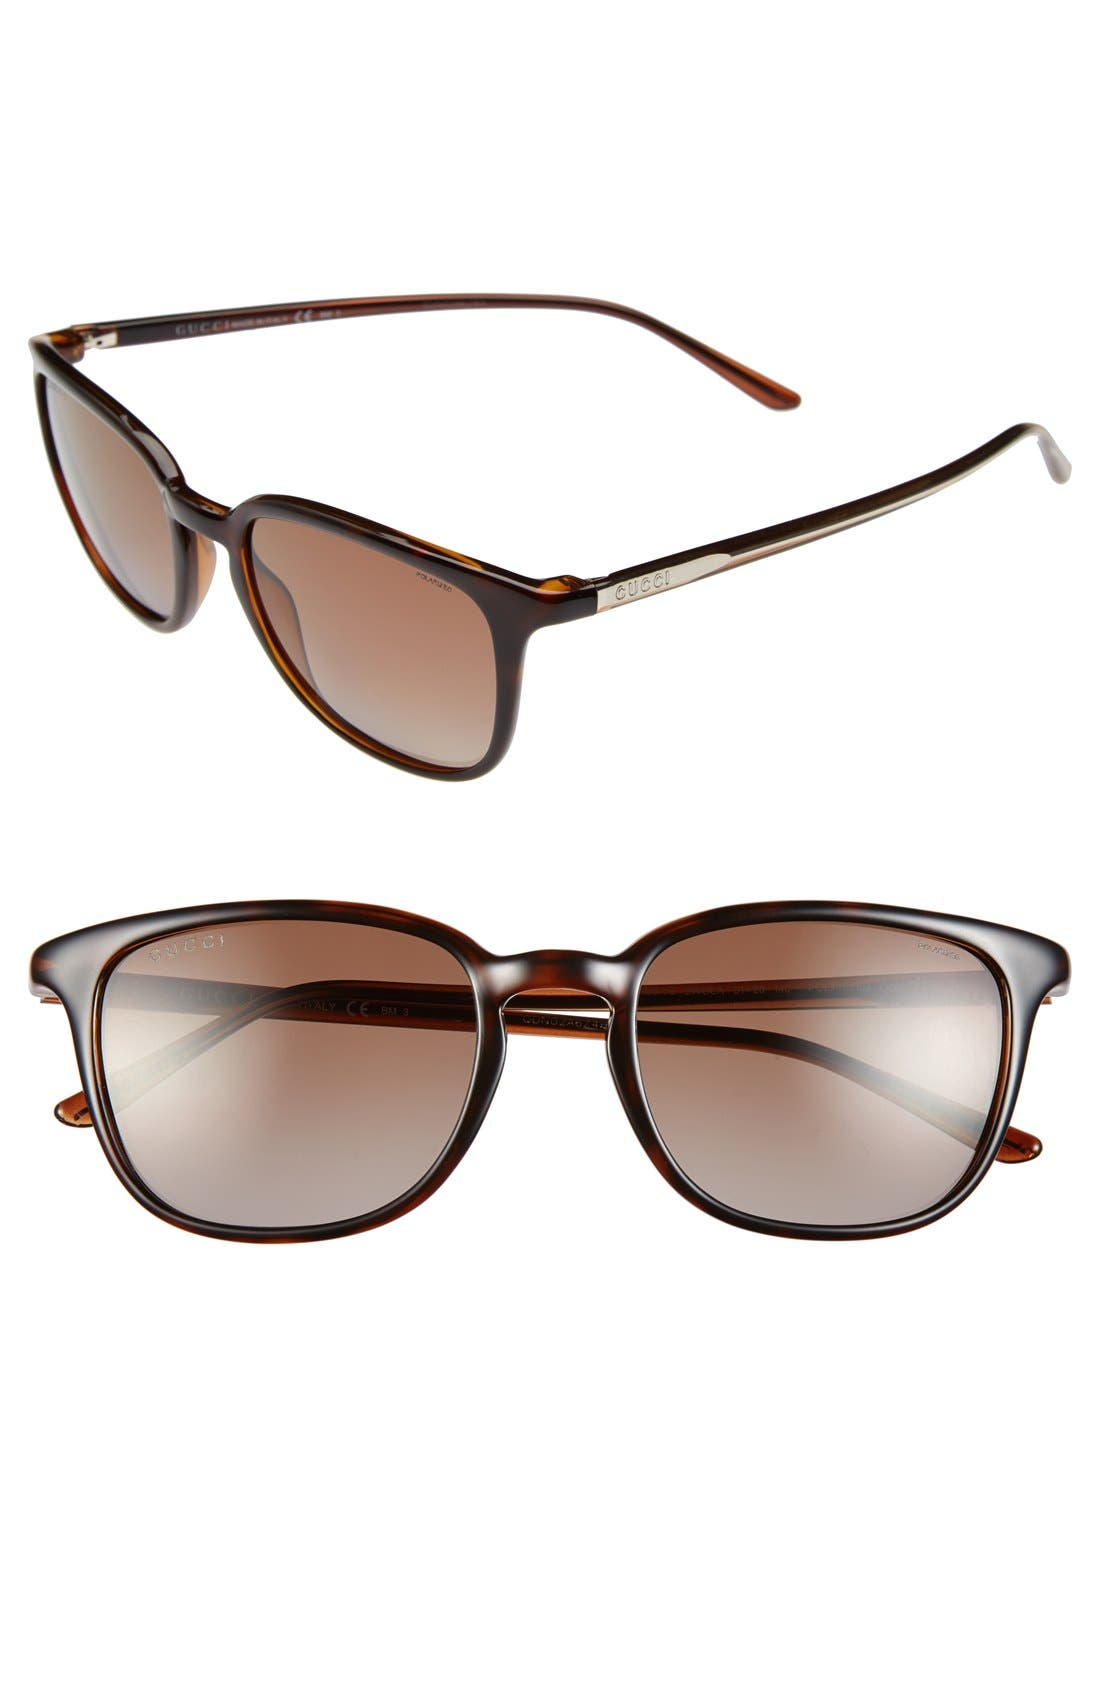 Alternate Image 1 Selected - Gucci '1067S' 51mm Sunglasses